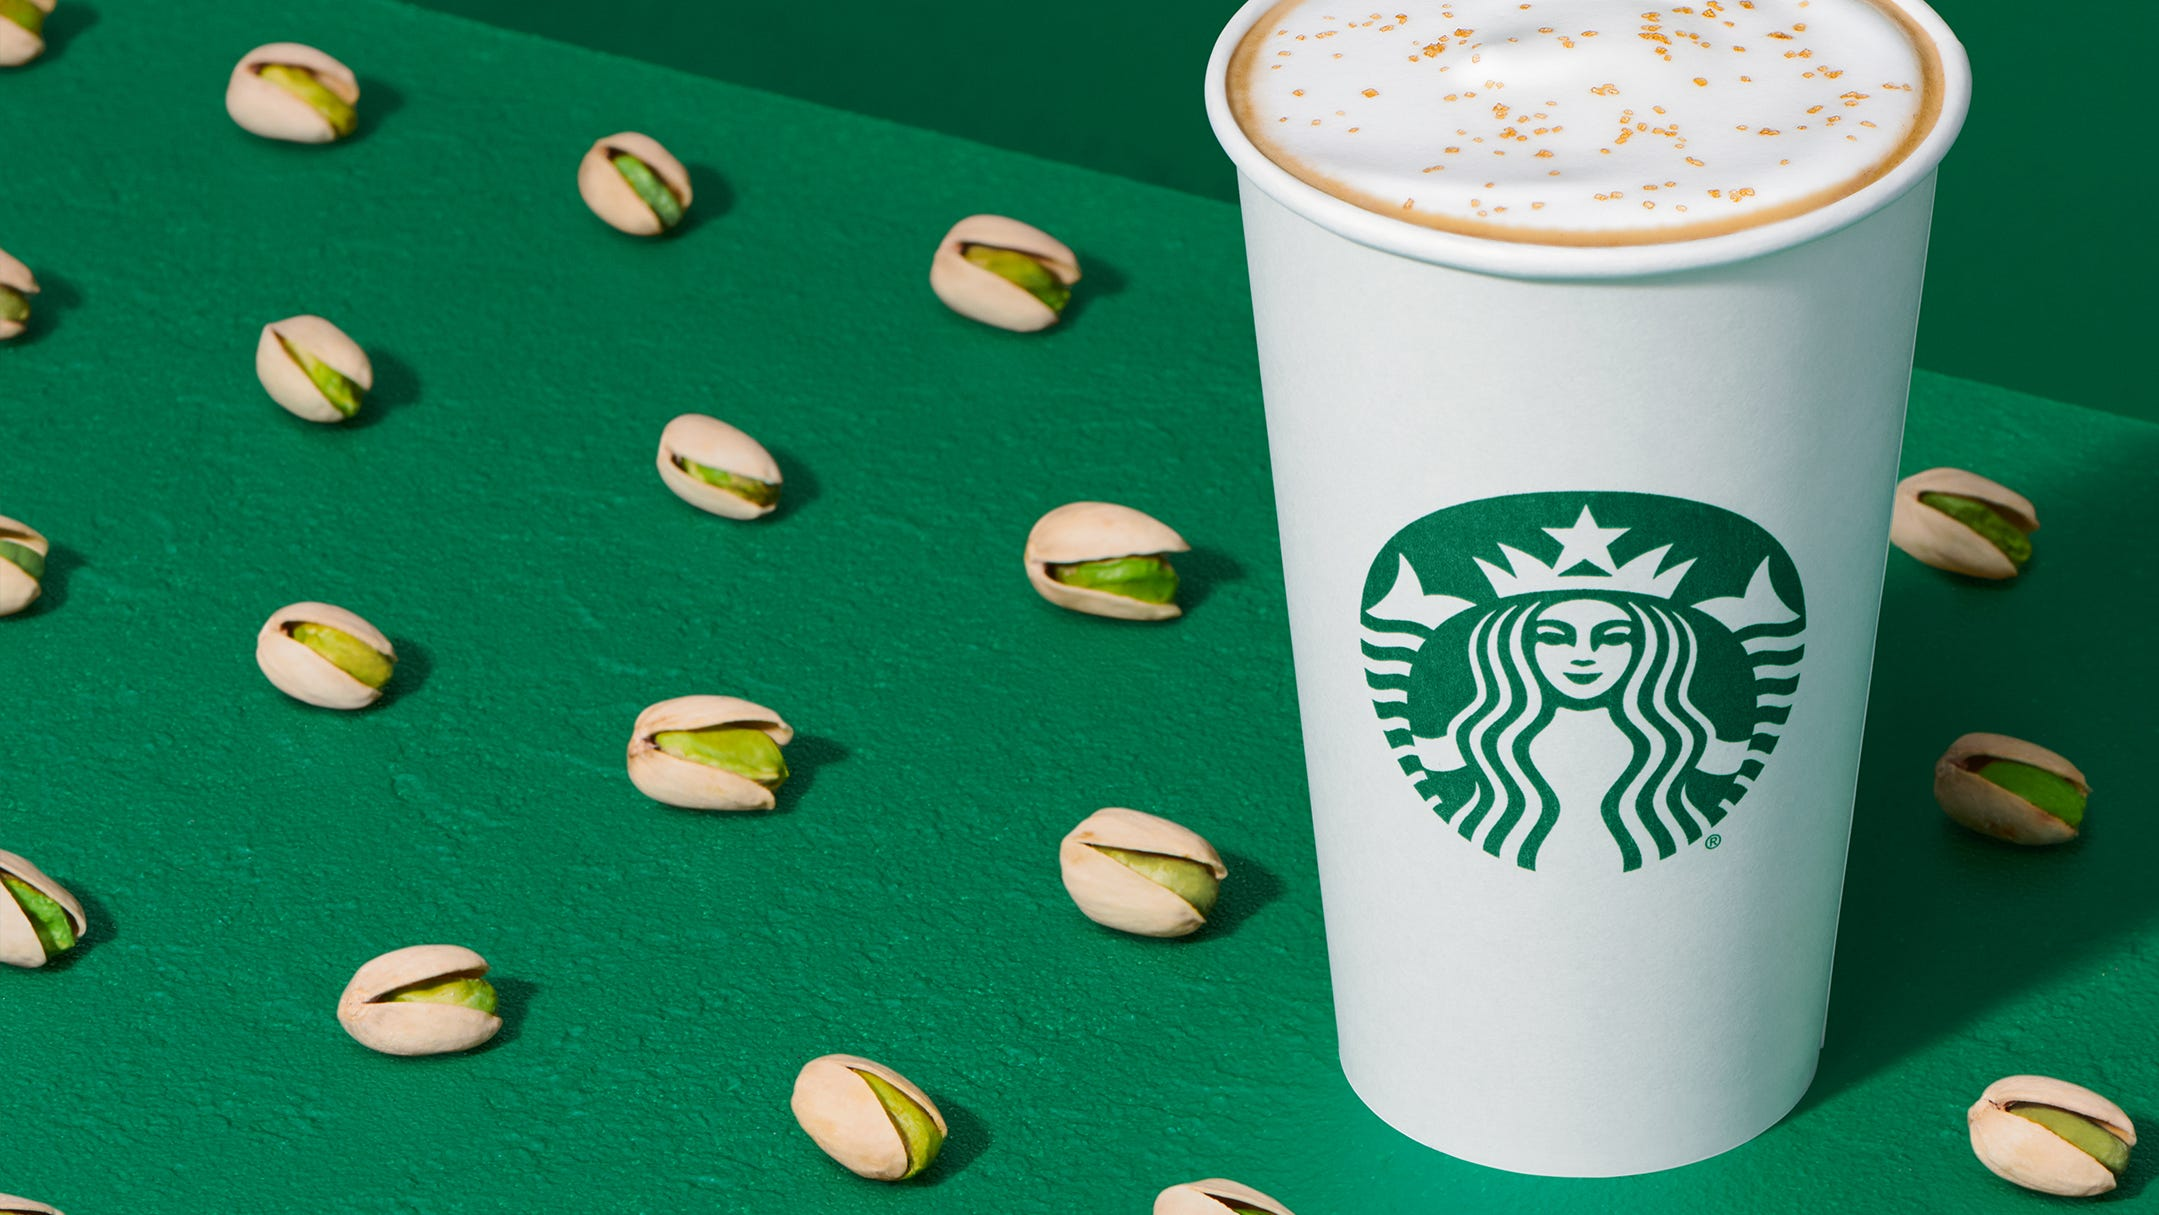 Starbucks Releases Winter Menu With New Pistachio Latte, Honey Almondmilk Cold Brew, Red Velvet Loaf And More photo